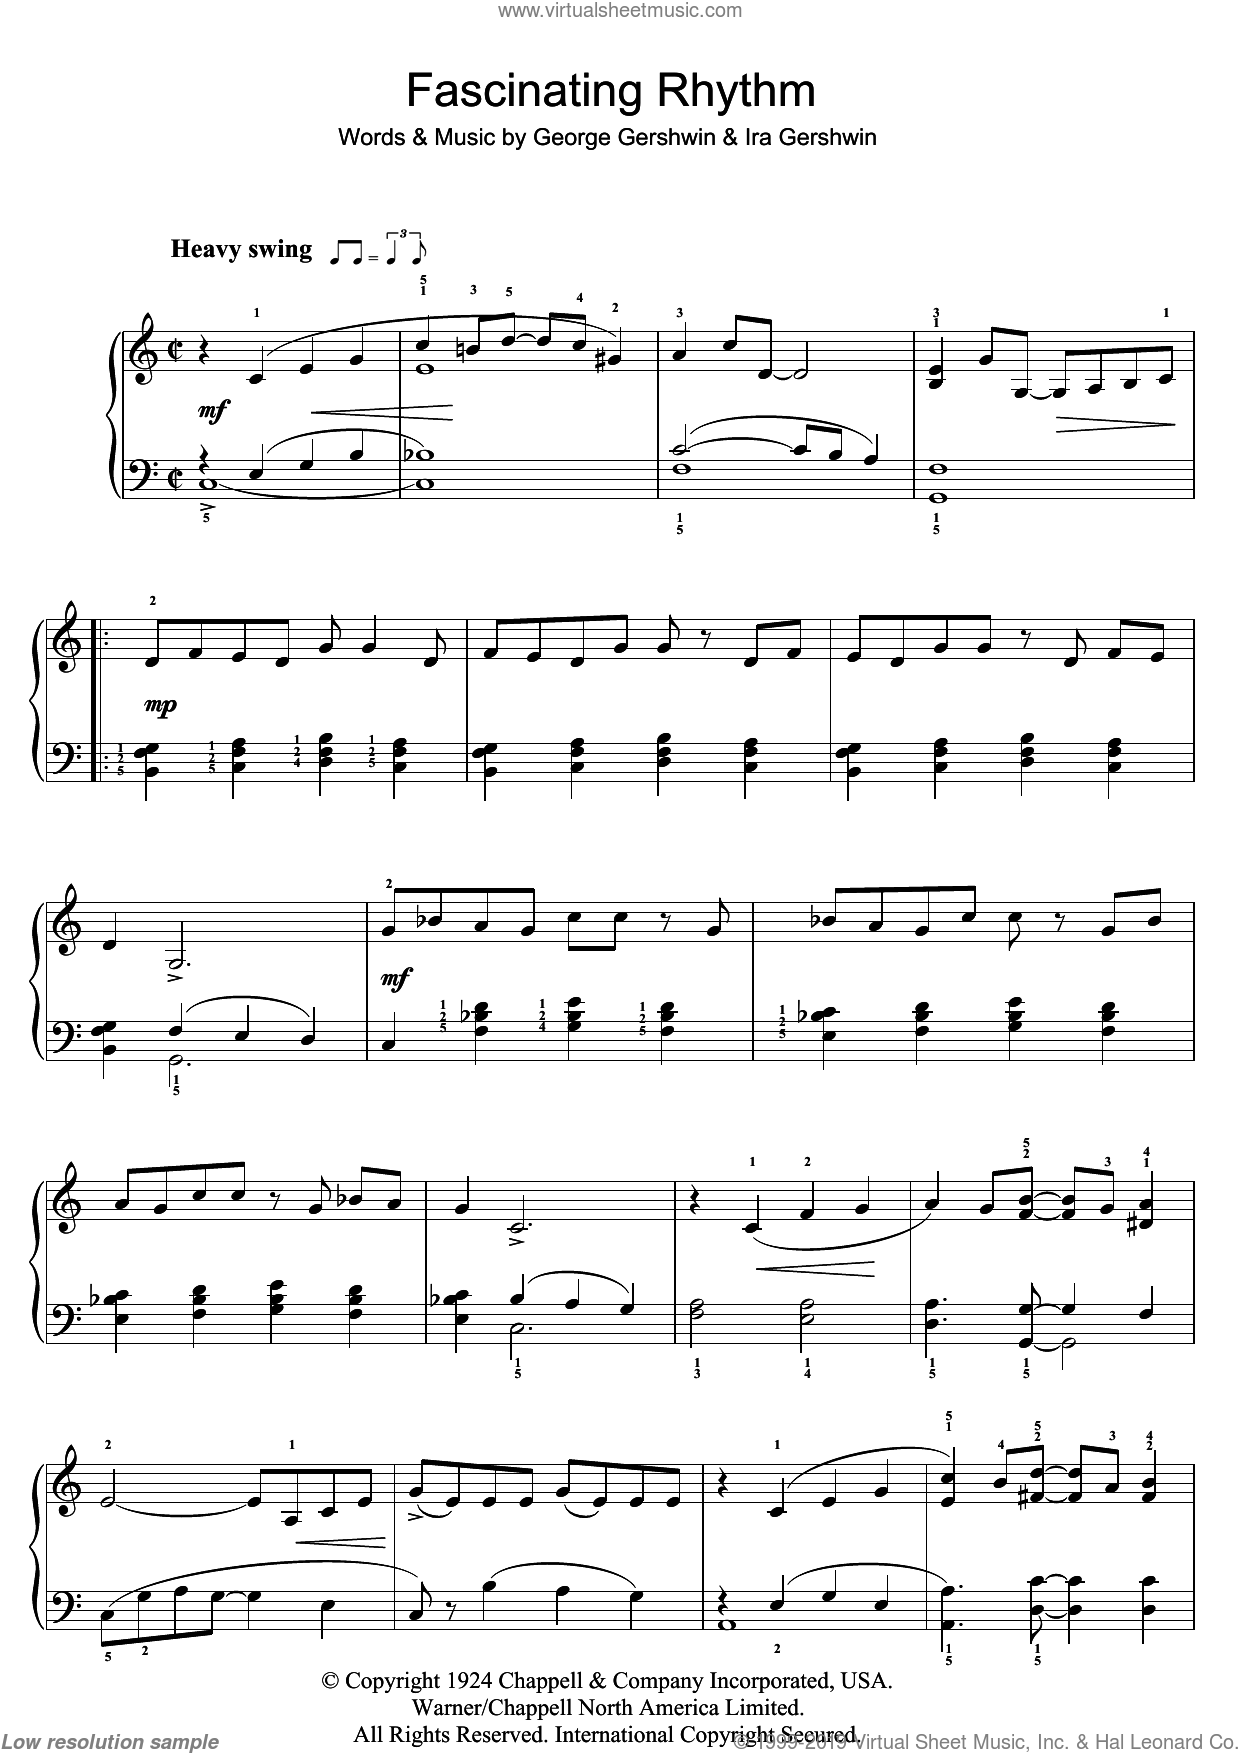 Fascinating Rhythm sheet music for piano solo by Ira Gershwin and George Gershwin